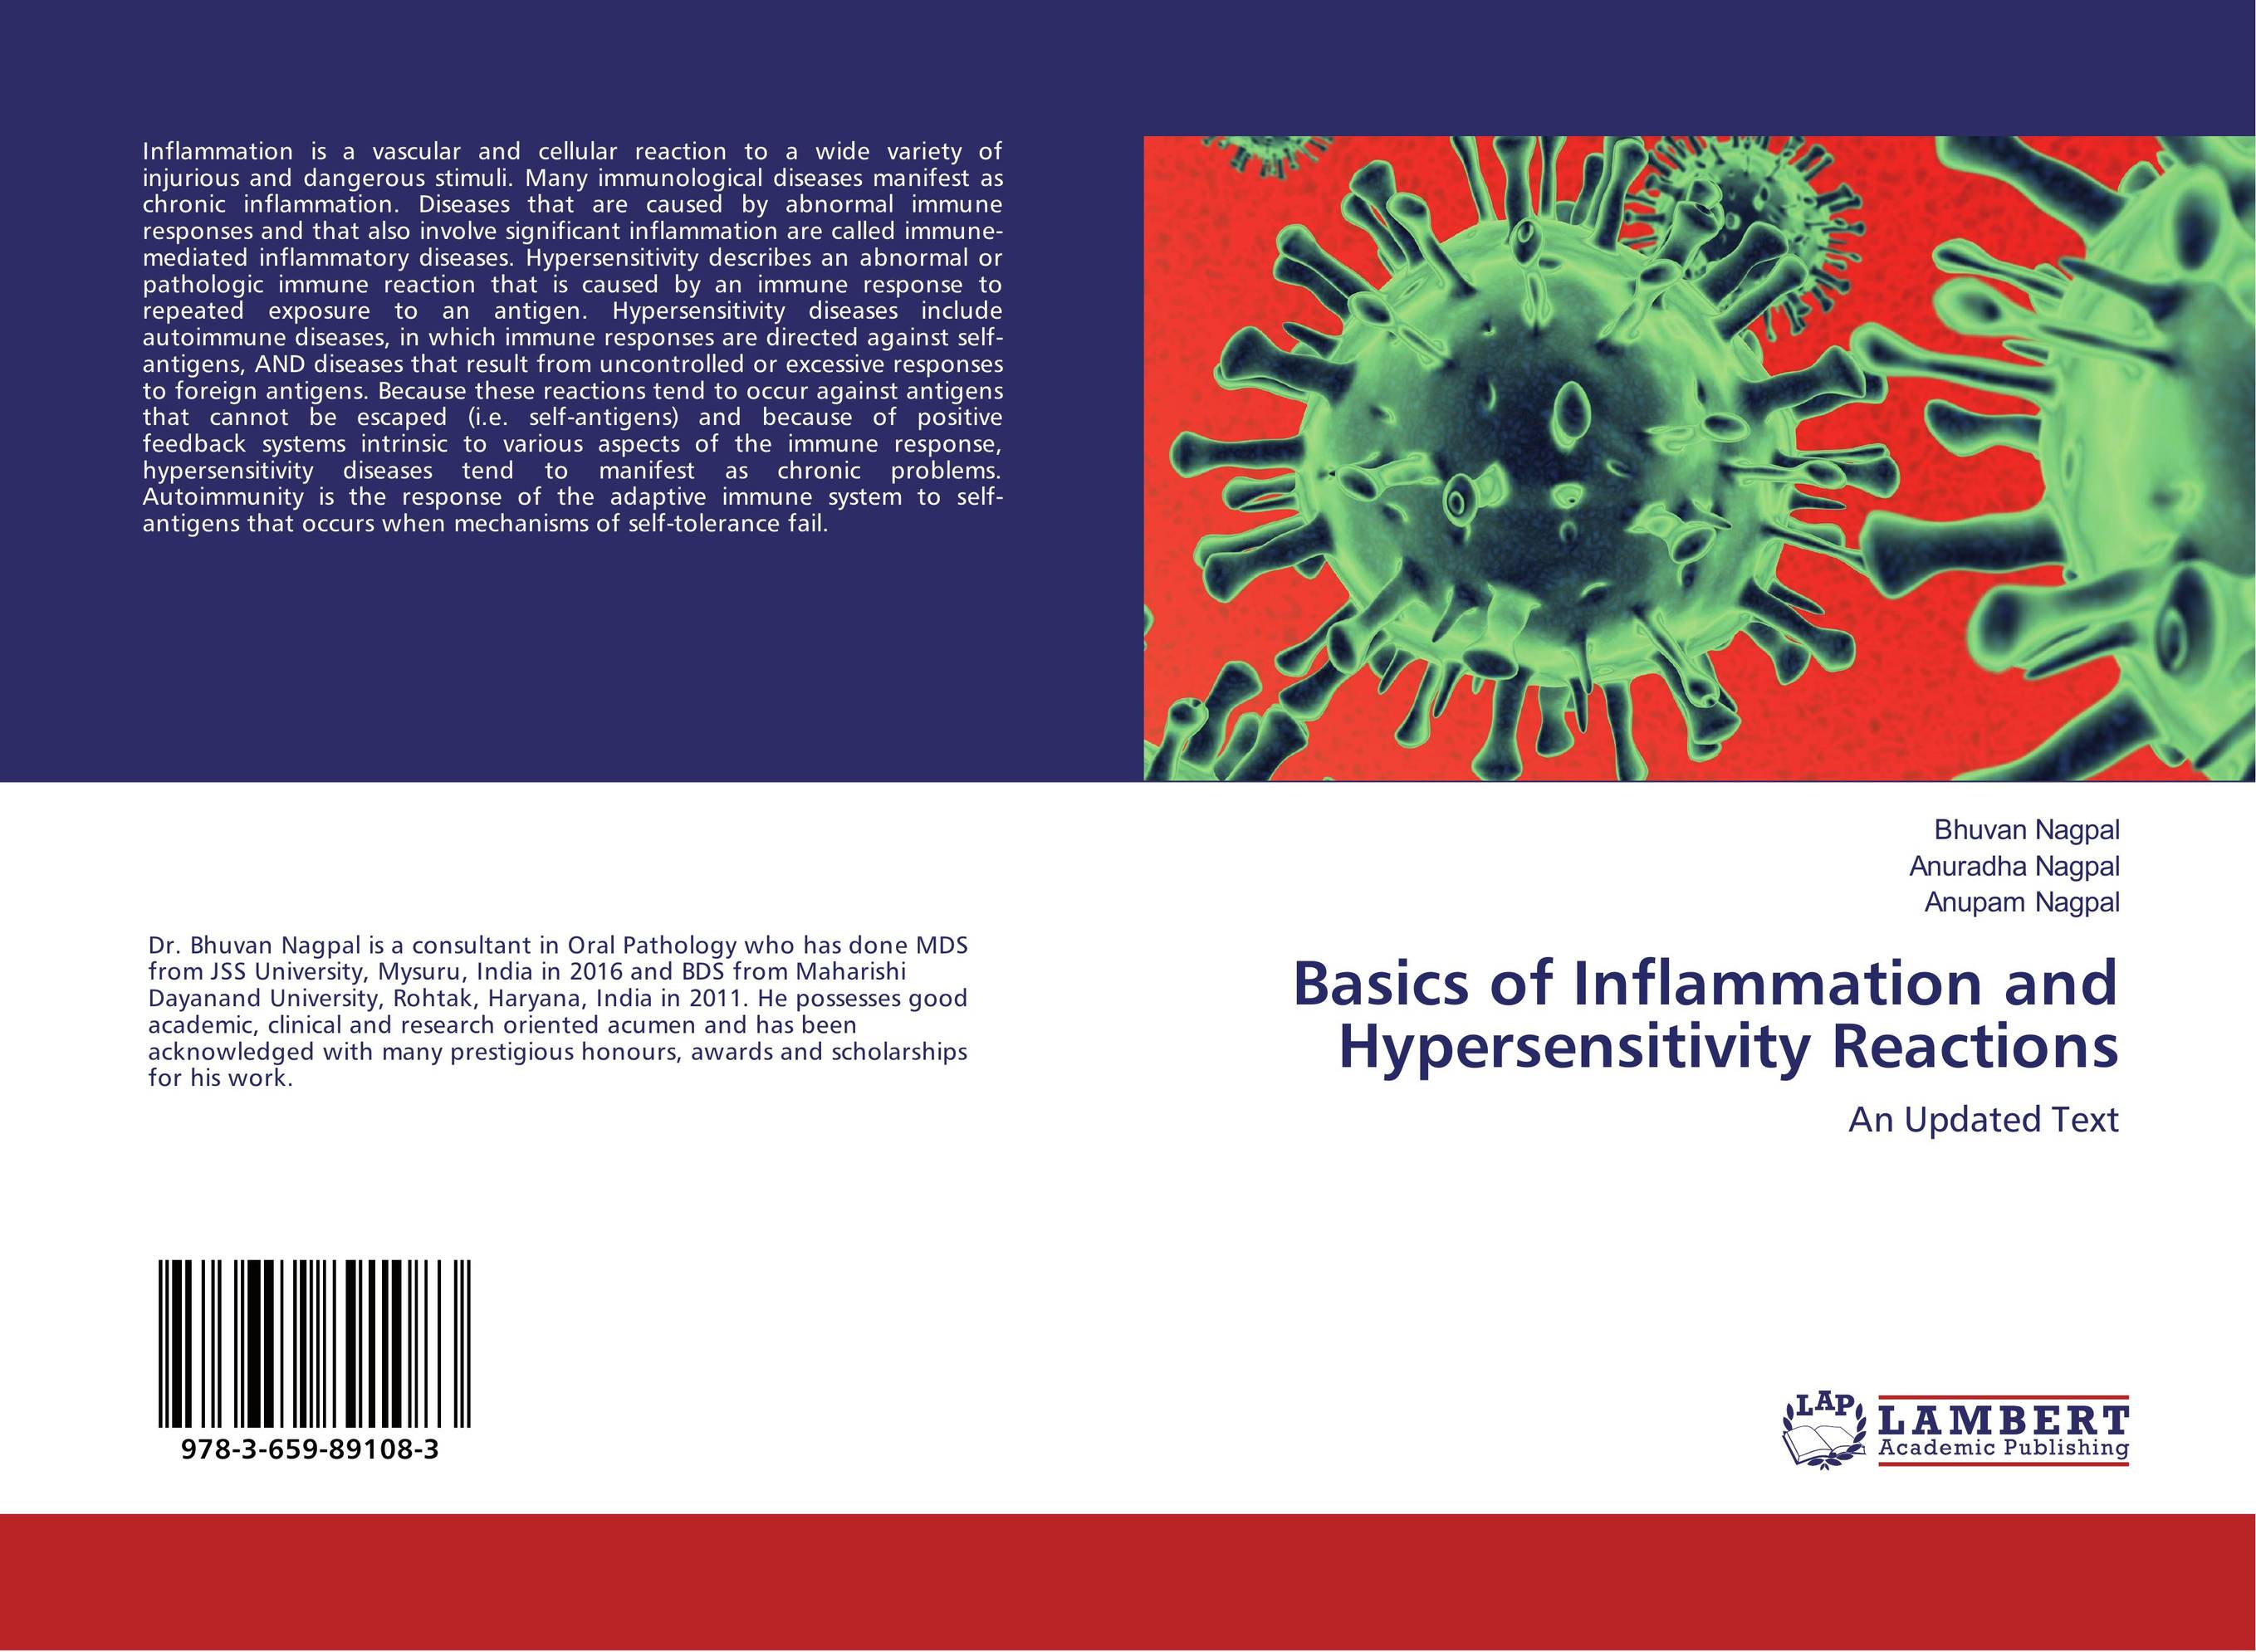 Basics of Inflammation and Hypersensitivity Reactions the autoimmune diseases